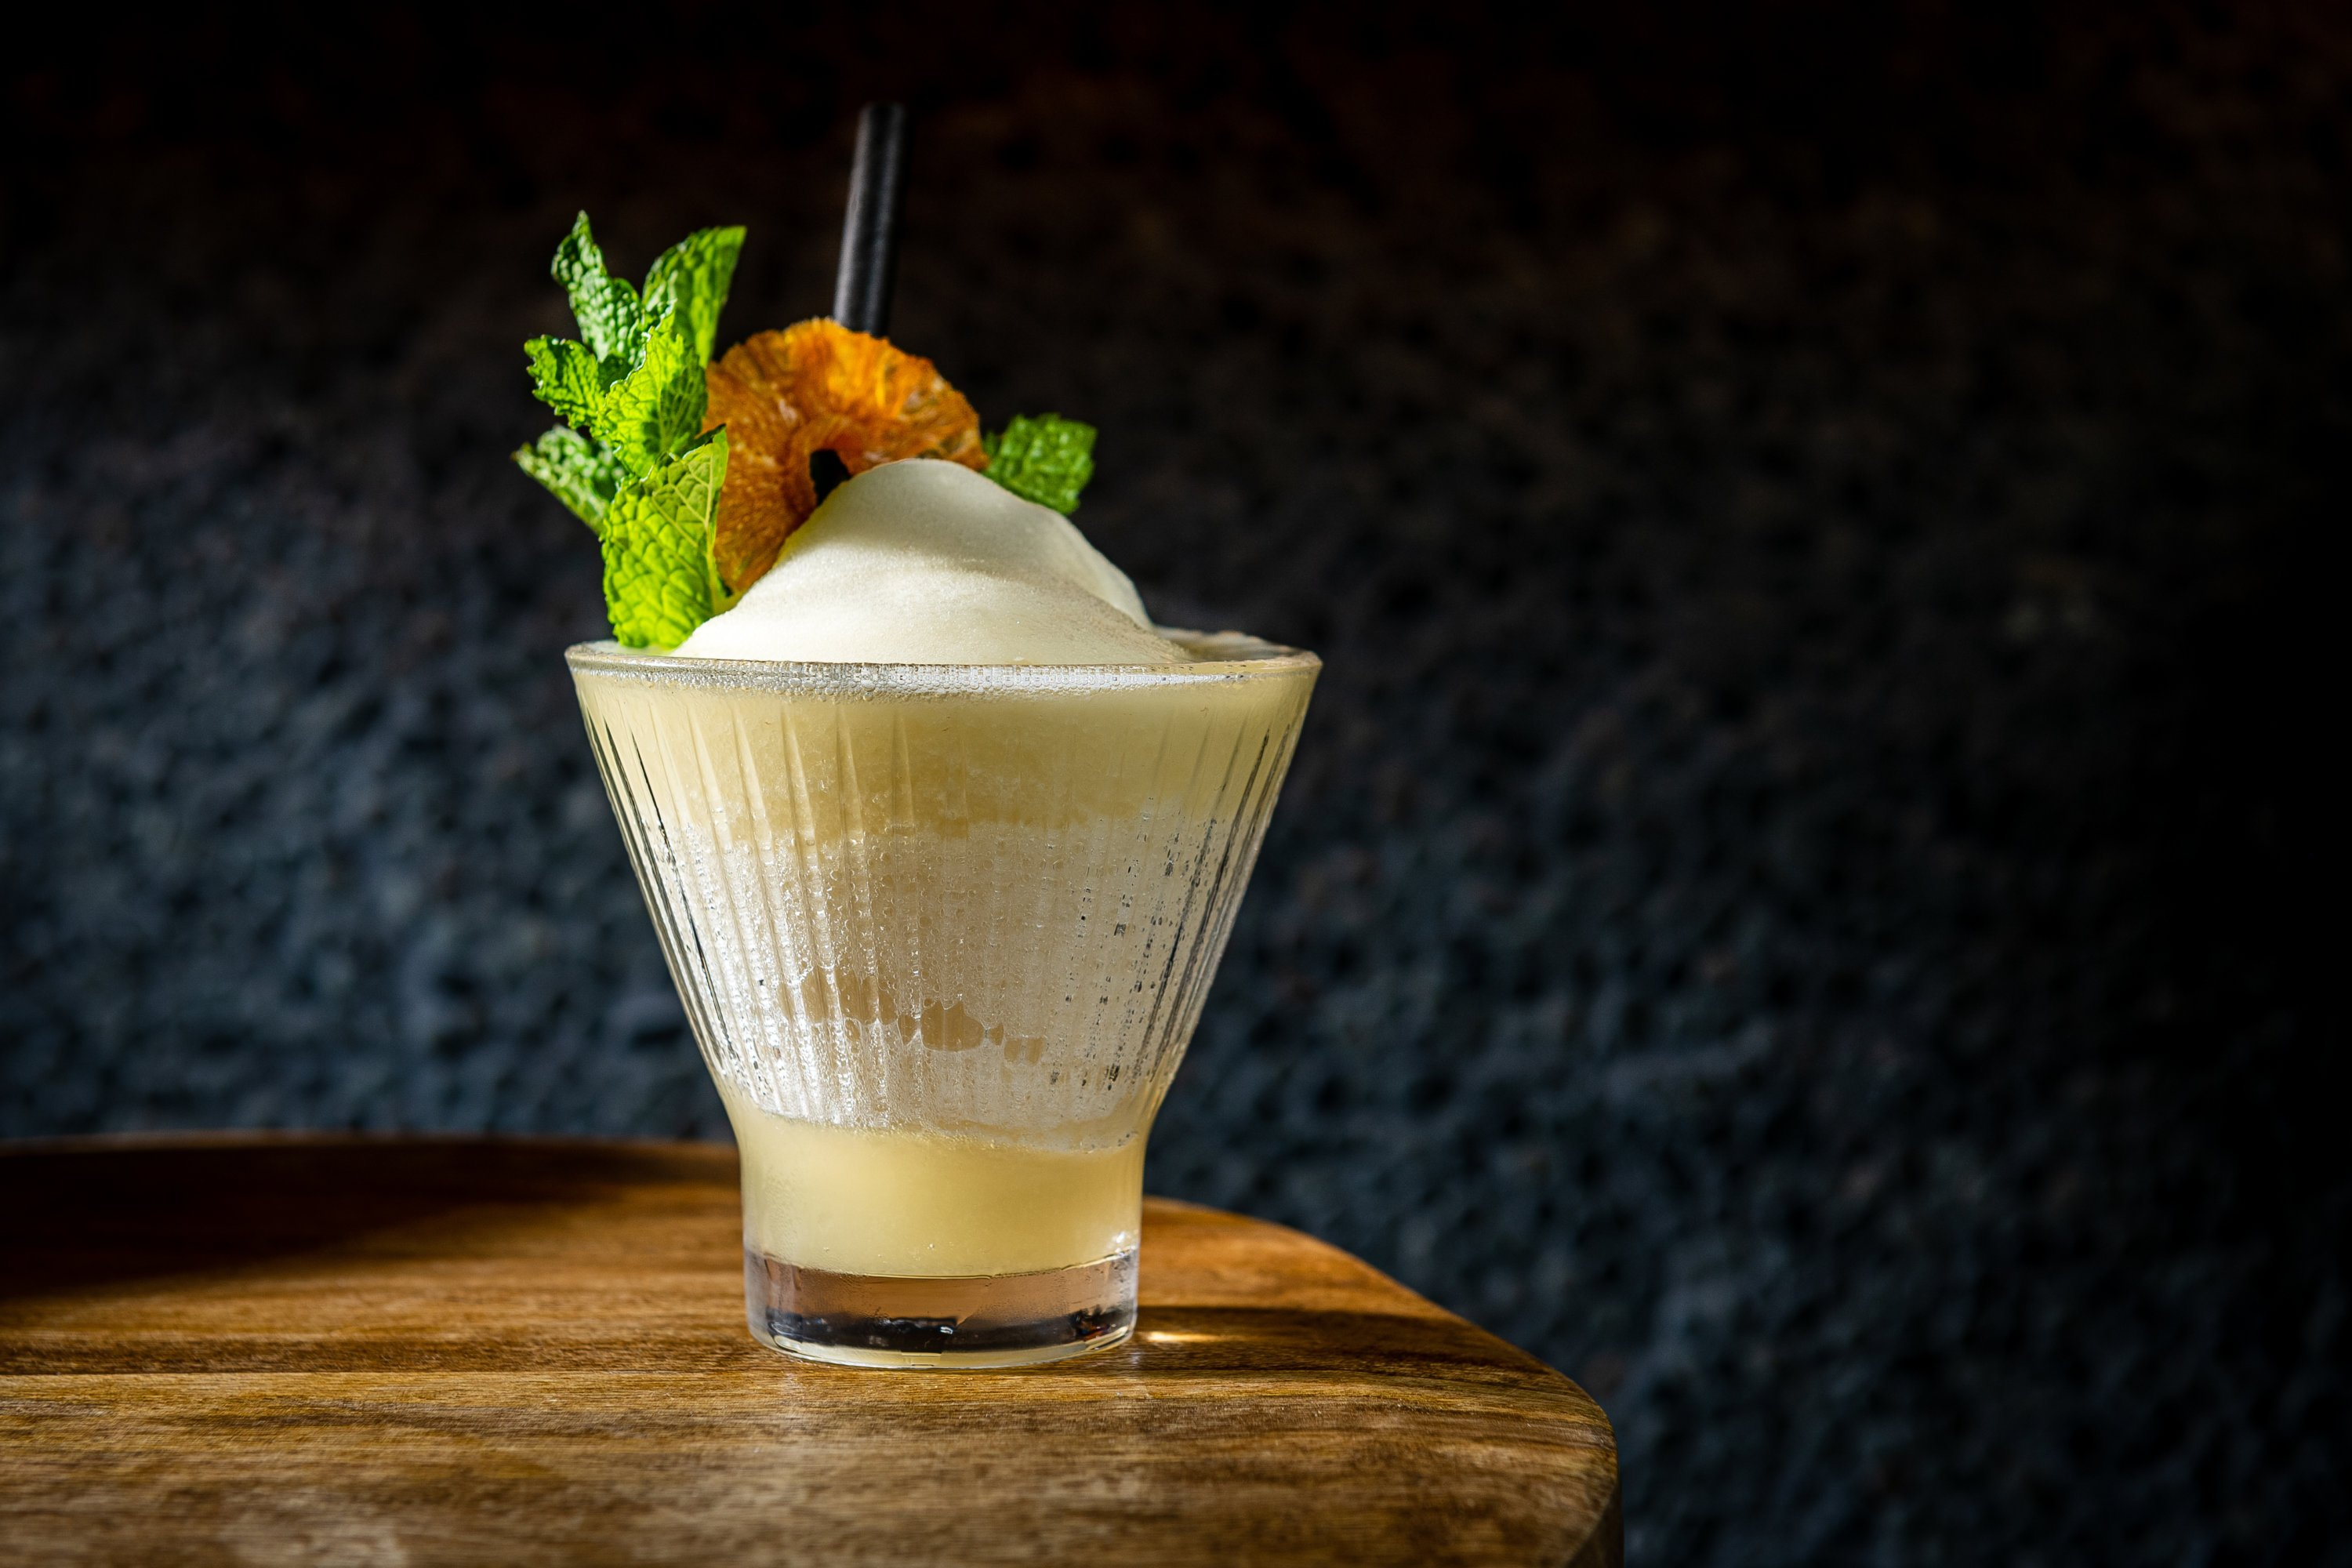 Frozen cocktails come in flavors like pineapple and coconut. Photo by Rey Lopez.